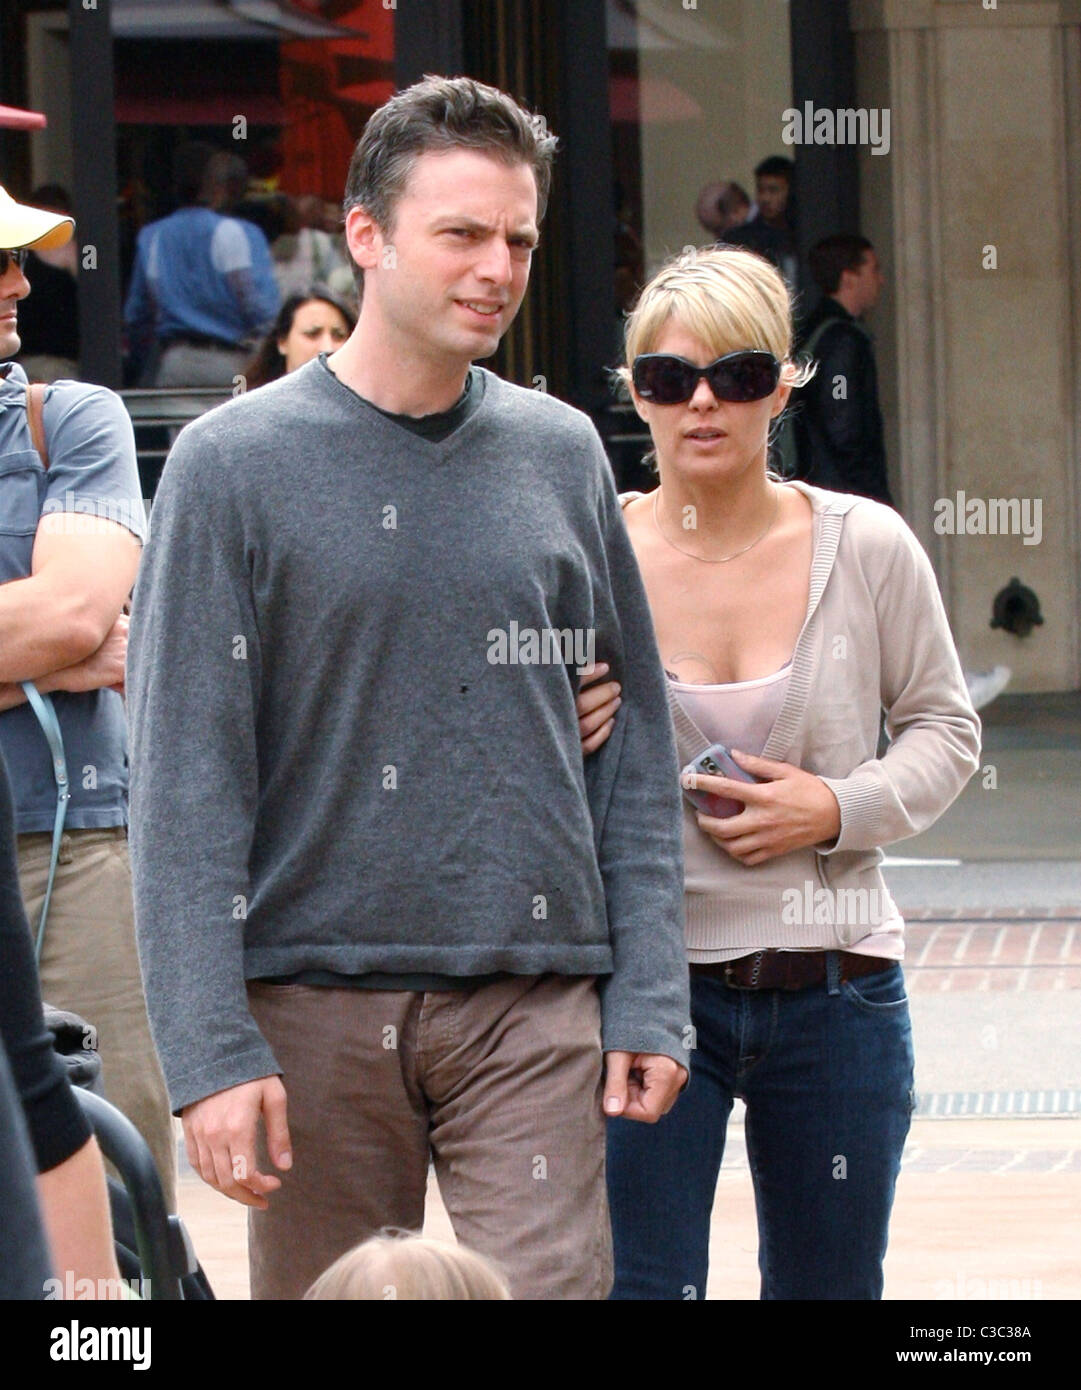 Weeds Star Justin Kirk Shopping In Hollywood With A Companion Los Angeles California  Owen Beiny